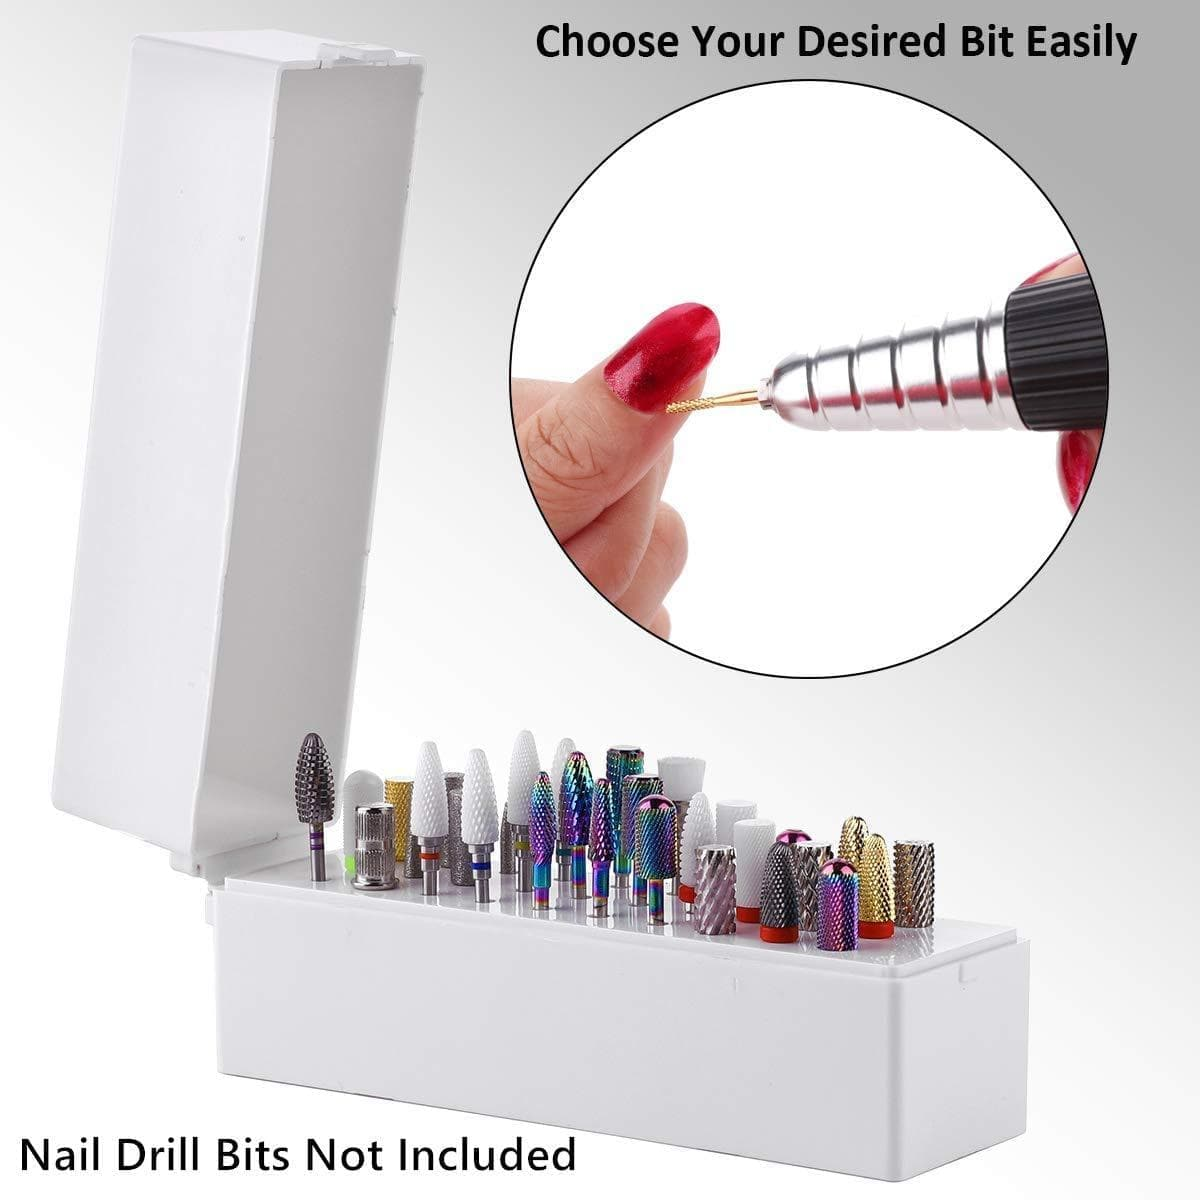 30 Hole Nail Drill Bits Organizer in White (Drill Bits Not Included) (B-22) - Makartt